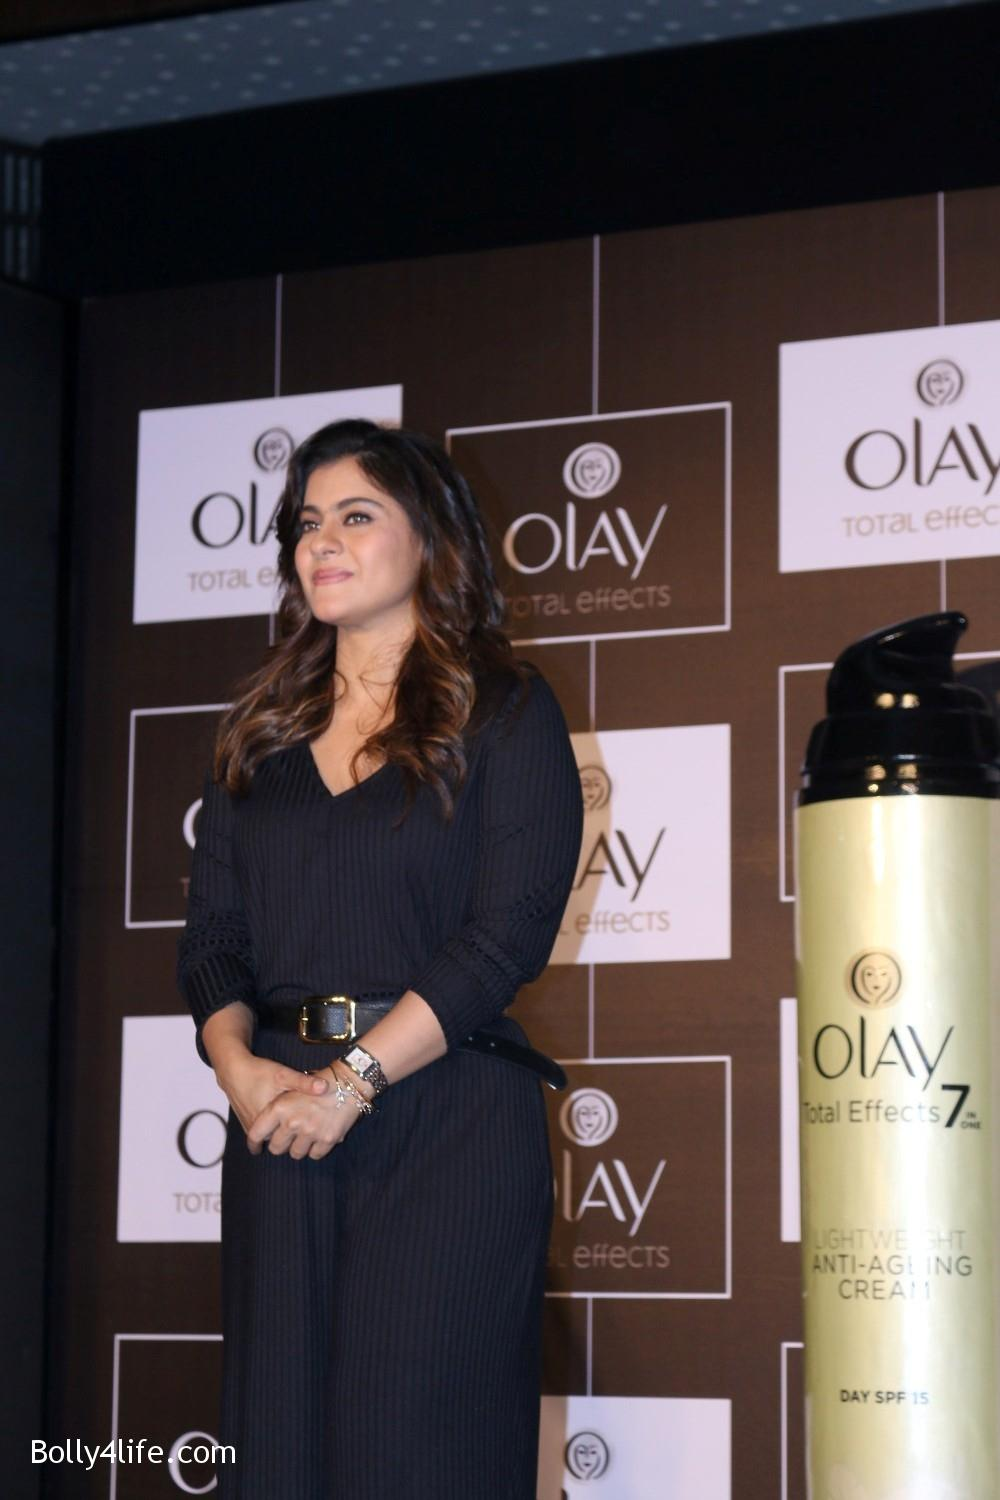 Kajol-Devgan-during-the-launch-of-Olay-Total-Effects-new-cream-14.jpg